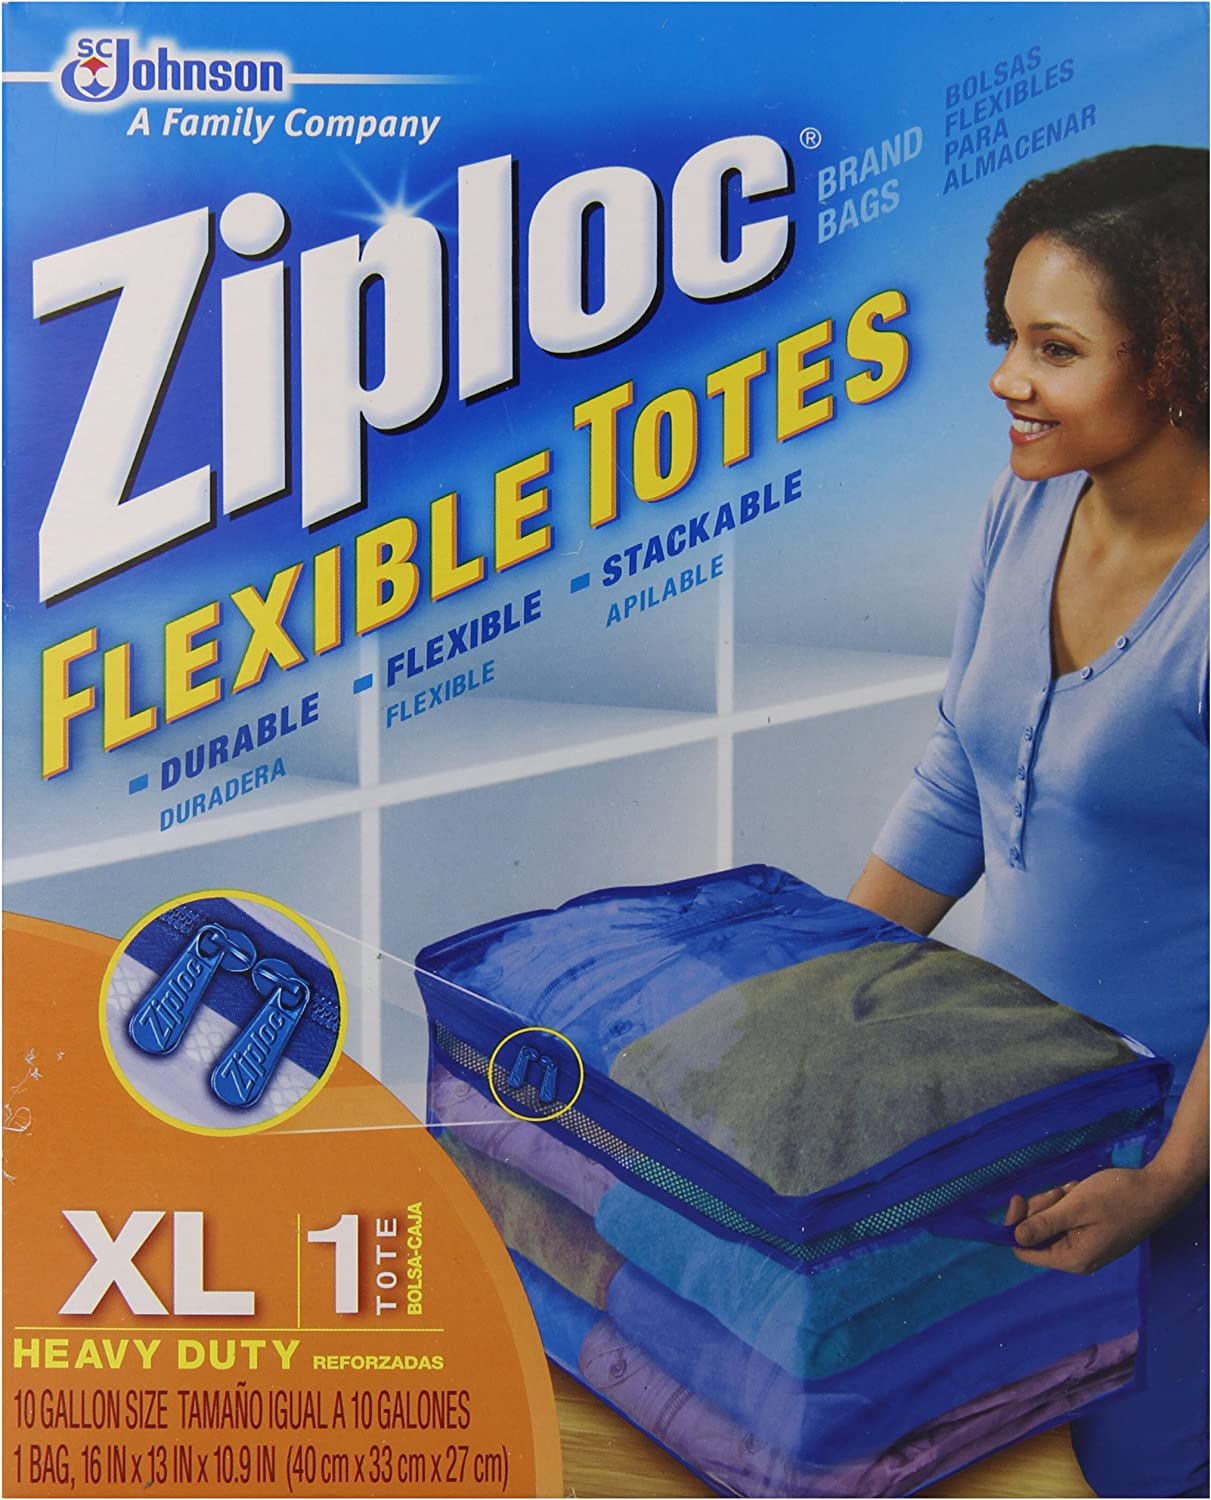 Our shop OFFers the best service SC Johnson Great interest 70161 Ziploc Flex Totes - Pack XL of 6